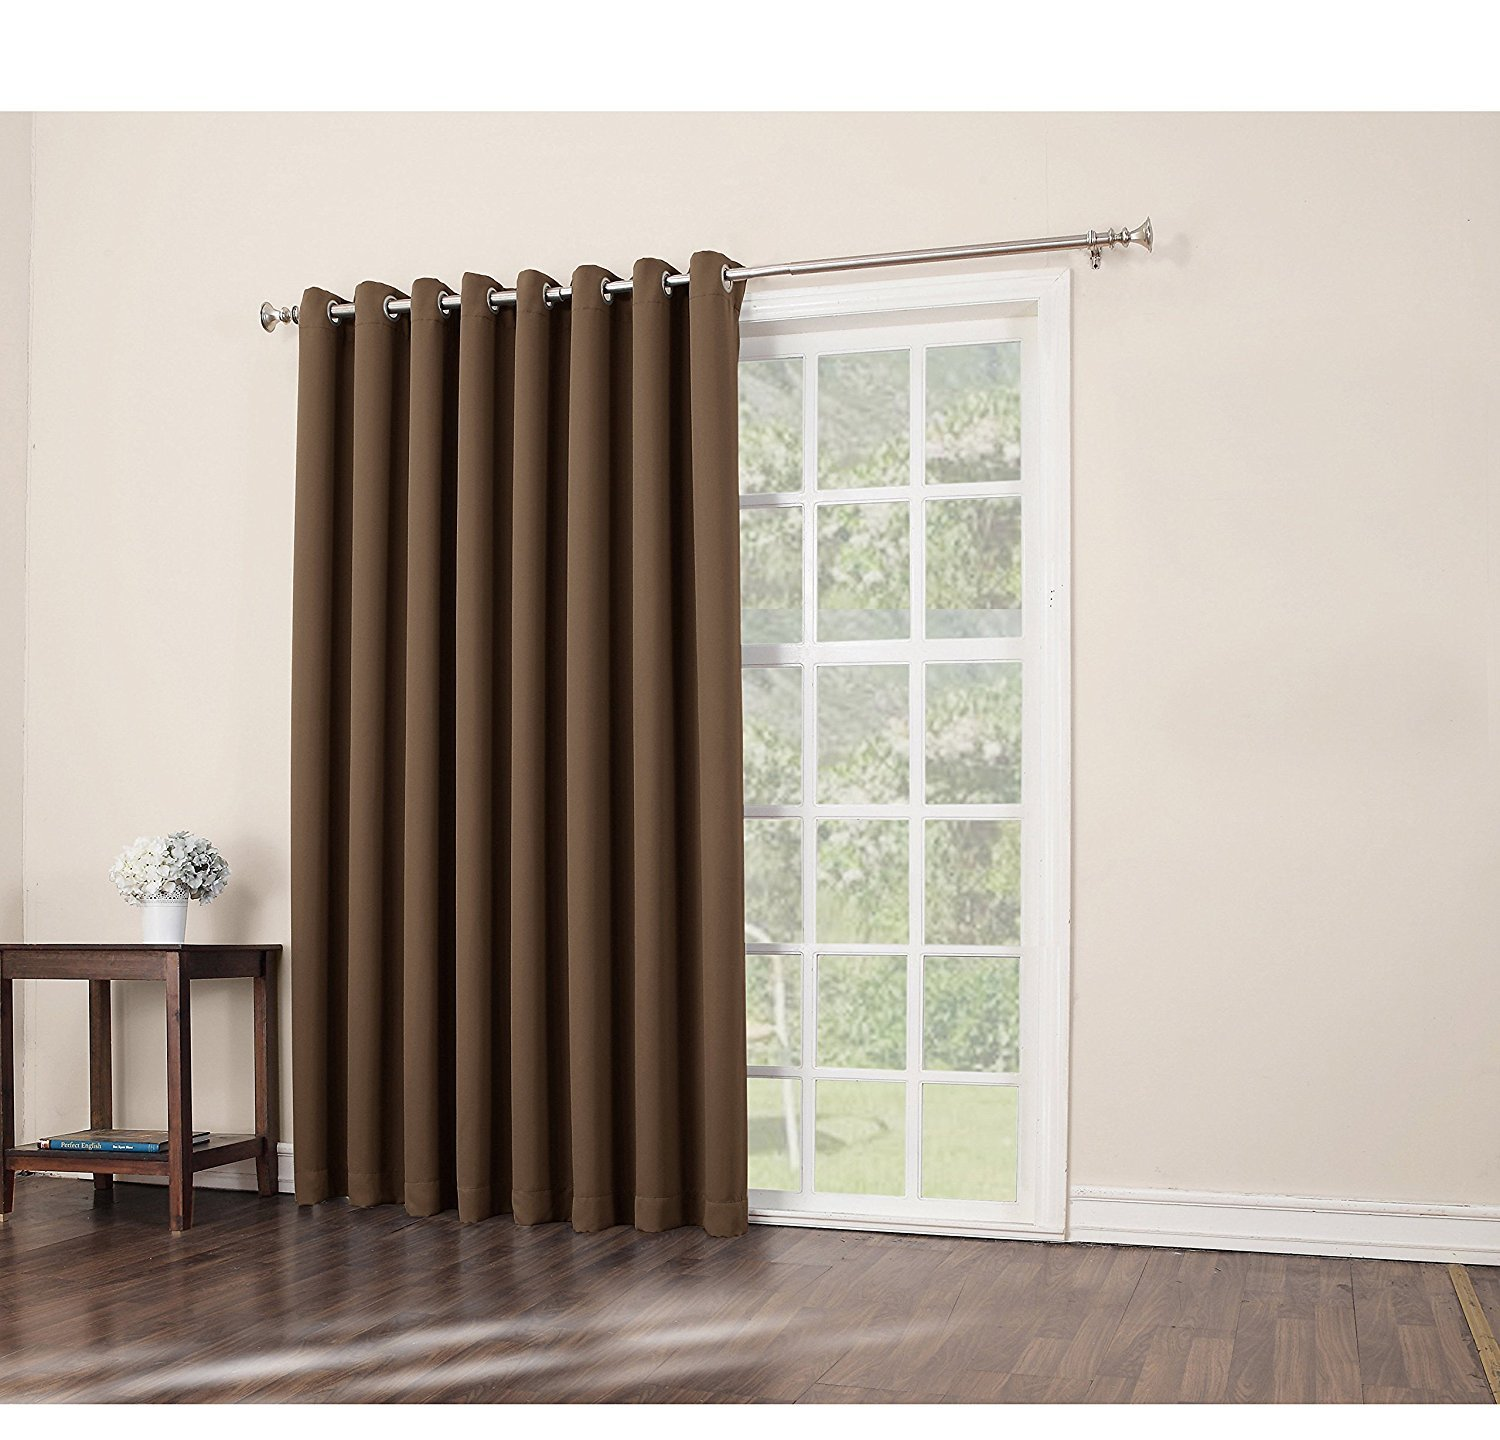 inch barley solid color sliding door curtain dark brown sliding